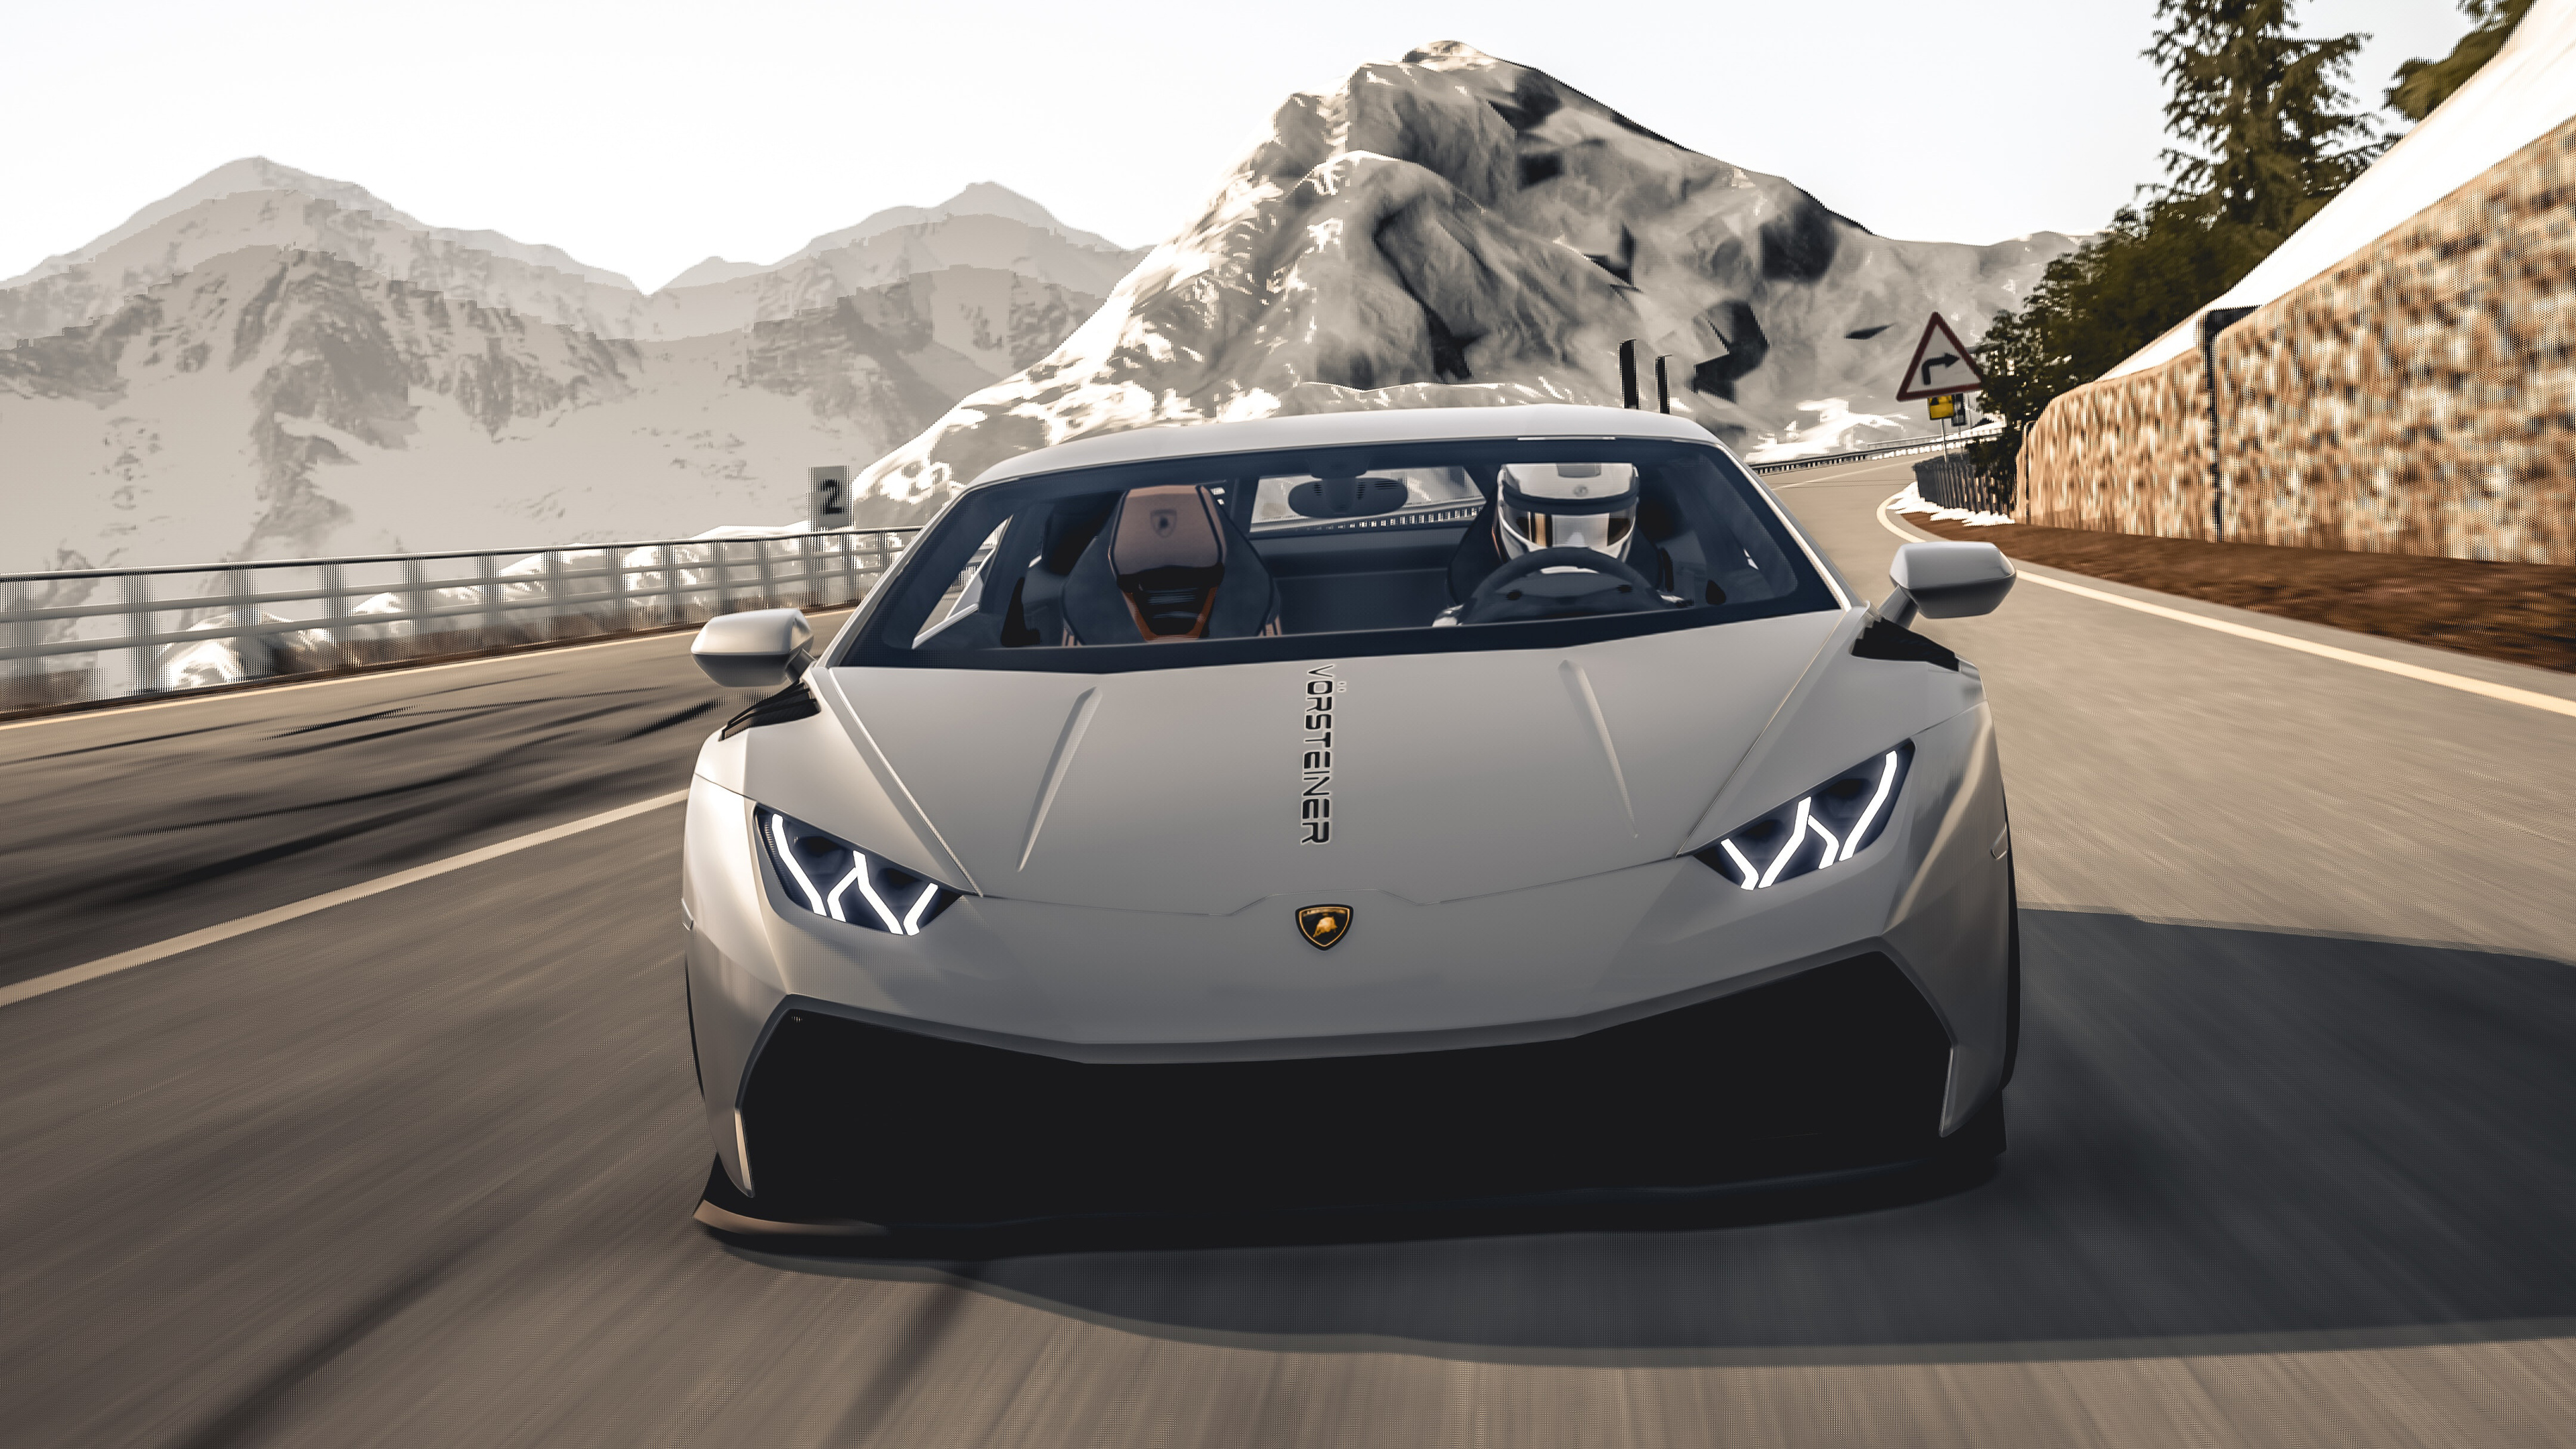 vorsteiner lamborghini huracan 2019 1570392201 - Vorsteiner Lamborghini Huracan 2019 - lamborghini wallpapers, lamborghini huracan wallpapers, hd-wallpapers, cars wallpapers, 4k-wallpapers